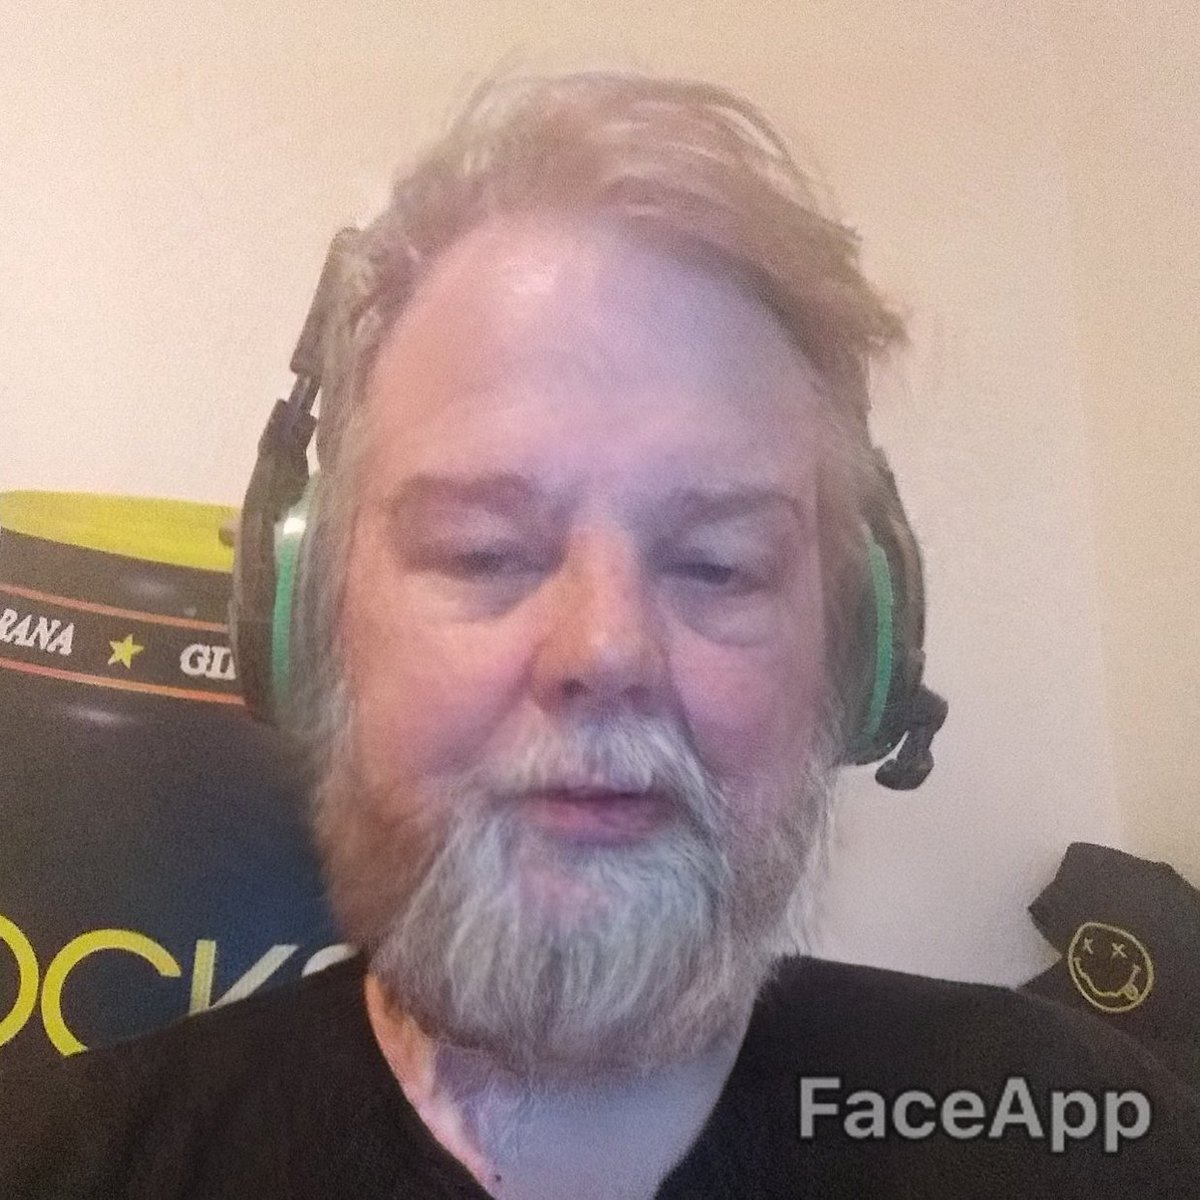 Am i losing it or do I look like Kyle from Tenacious D with more hair  trying to become a mixer streamer  @GassLeak #faceappchallenge  #Tenaciousd #mixer<br>http://pic.twitter.com/AQ0JUfFpPs